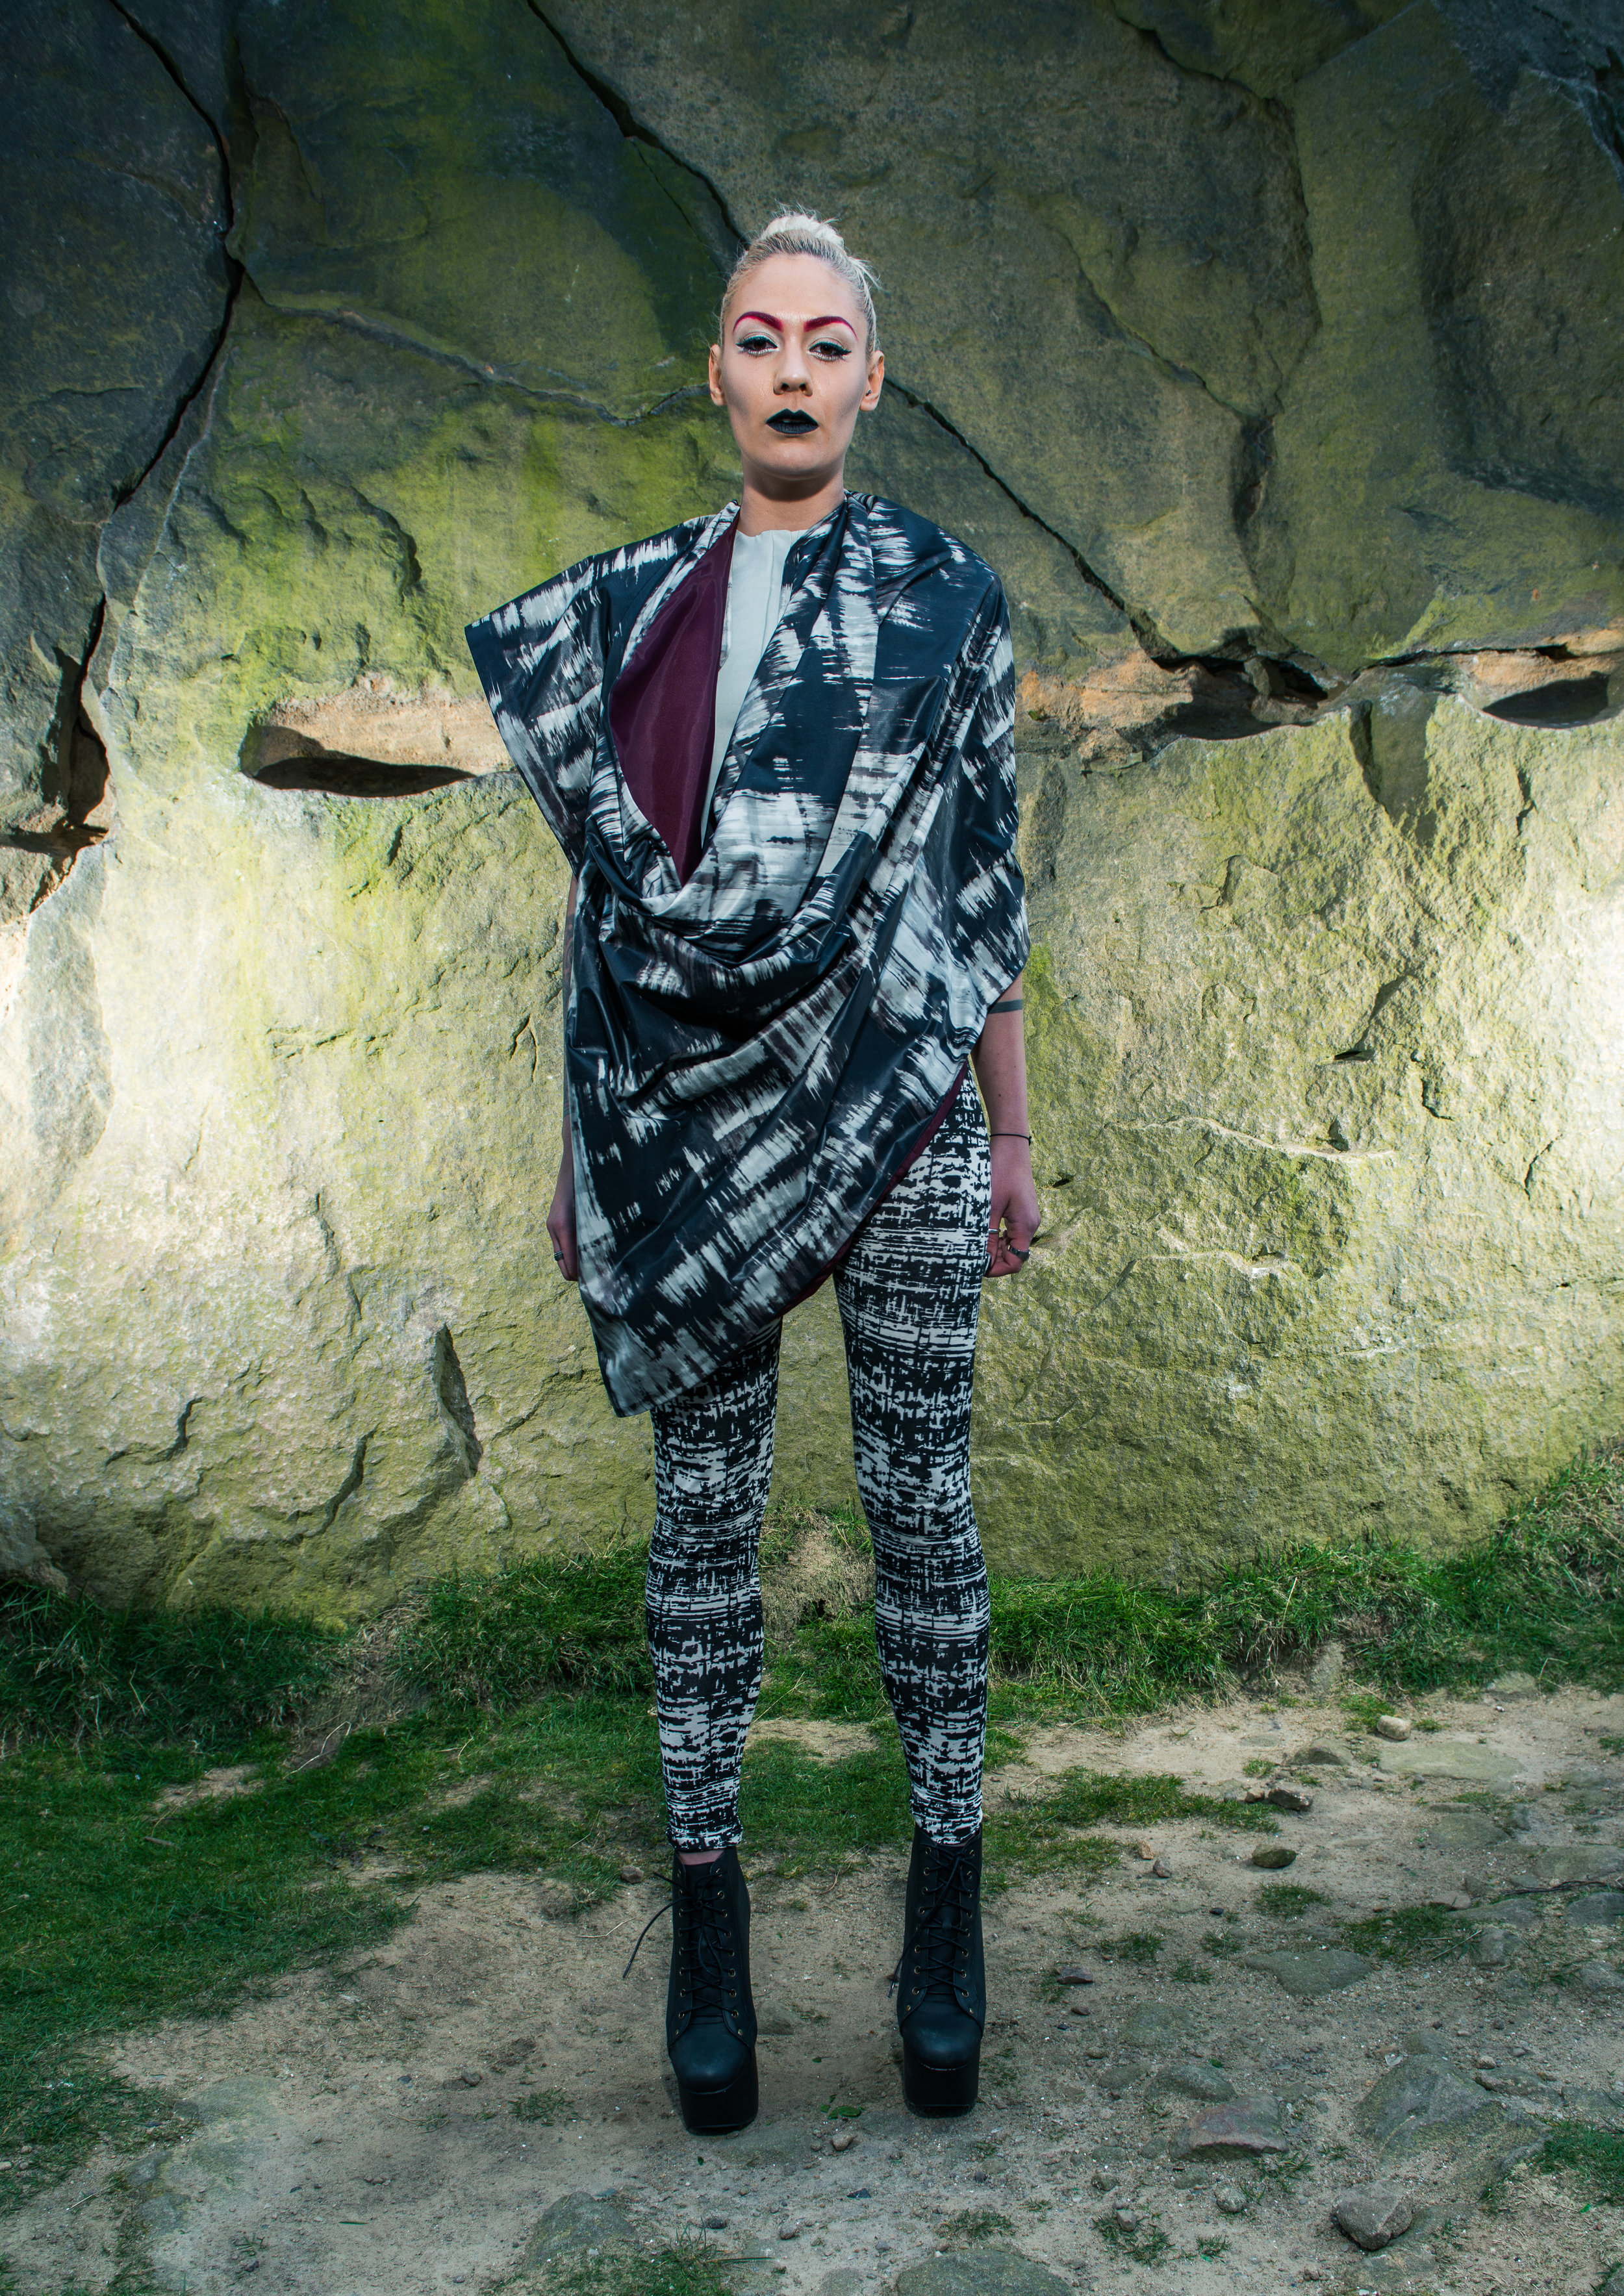 zaramia-ava-zaramiaava-leeds-fashion-designer-ethical-sustainable-tailored-minimalist-aya-grey-print-fitted-crop-top-cape-leggings-versatile-drape-cowl-styling-womenswear-models-photoshoot-location-24